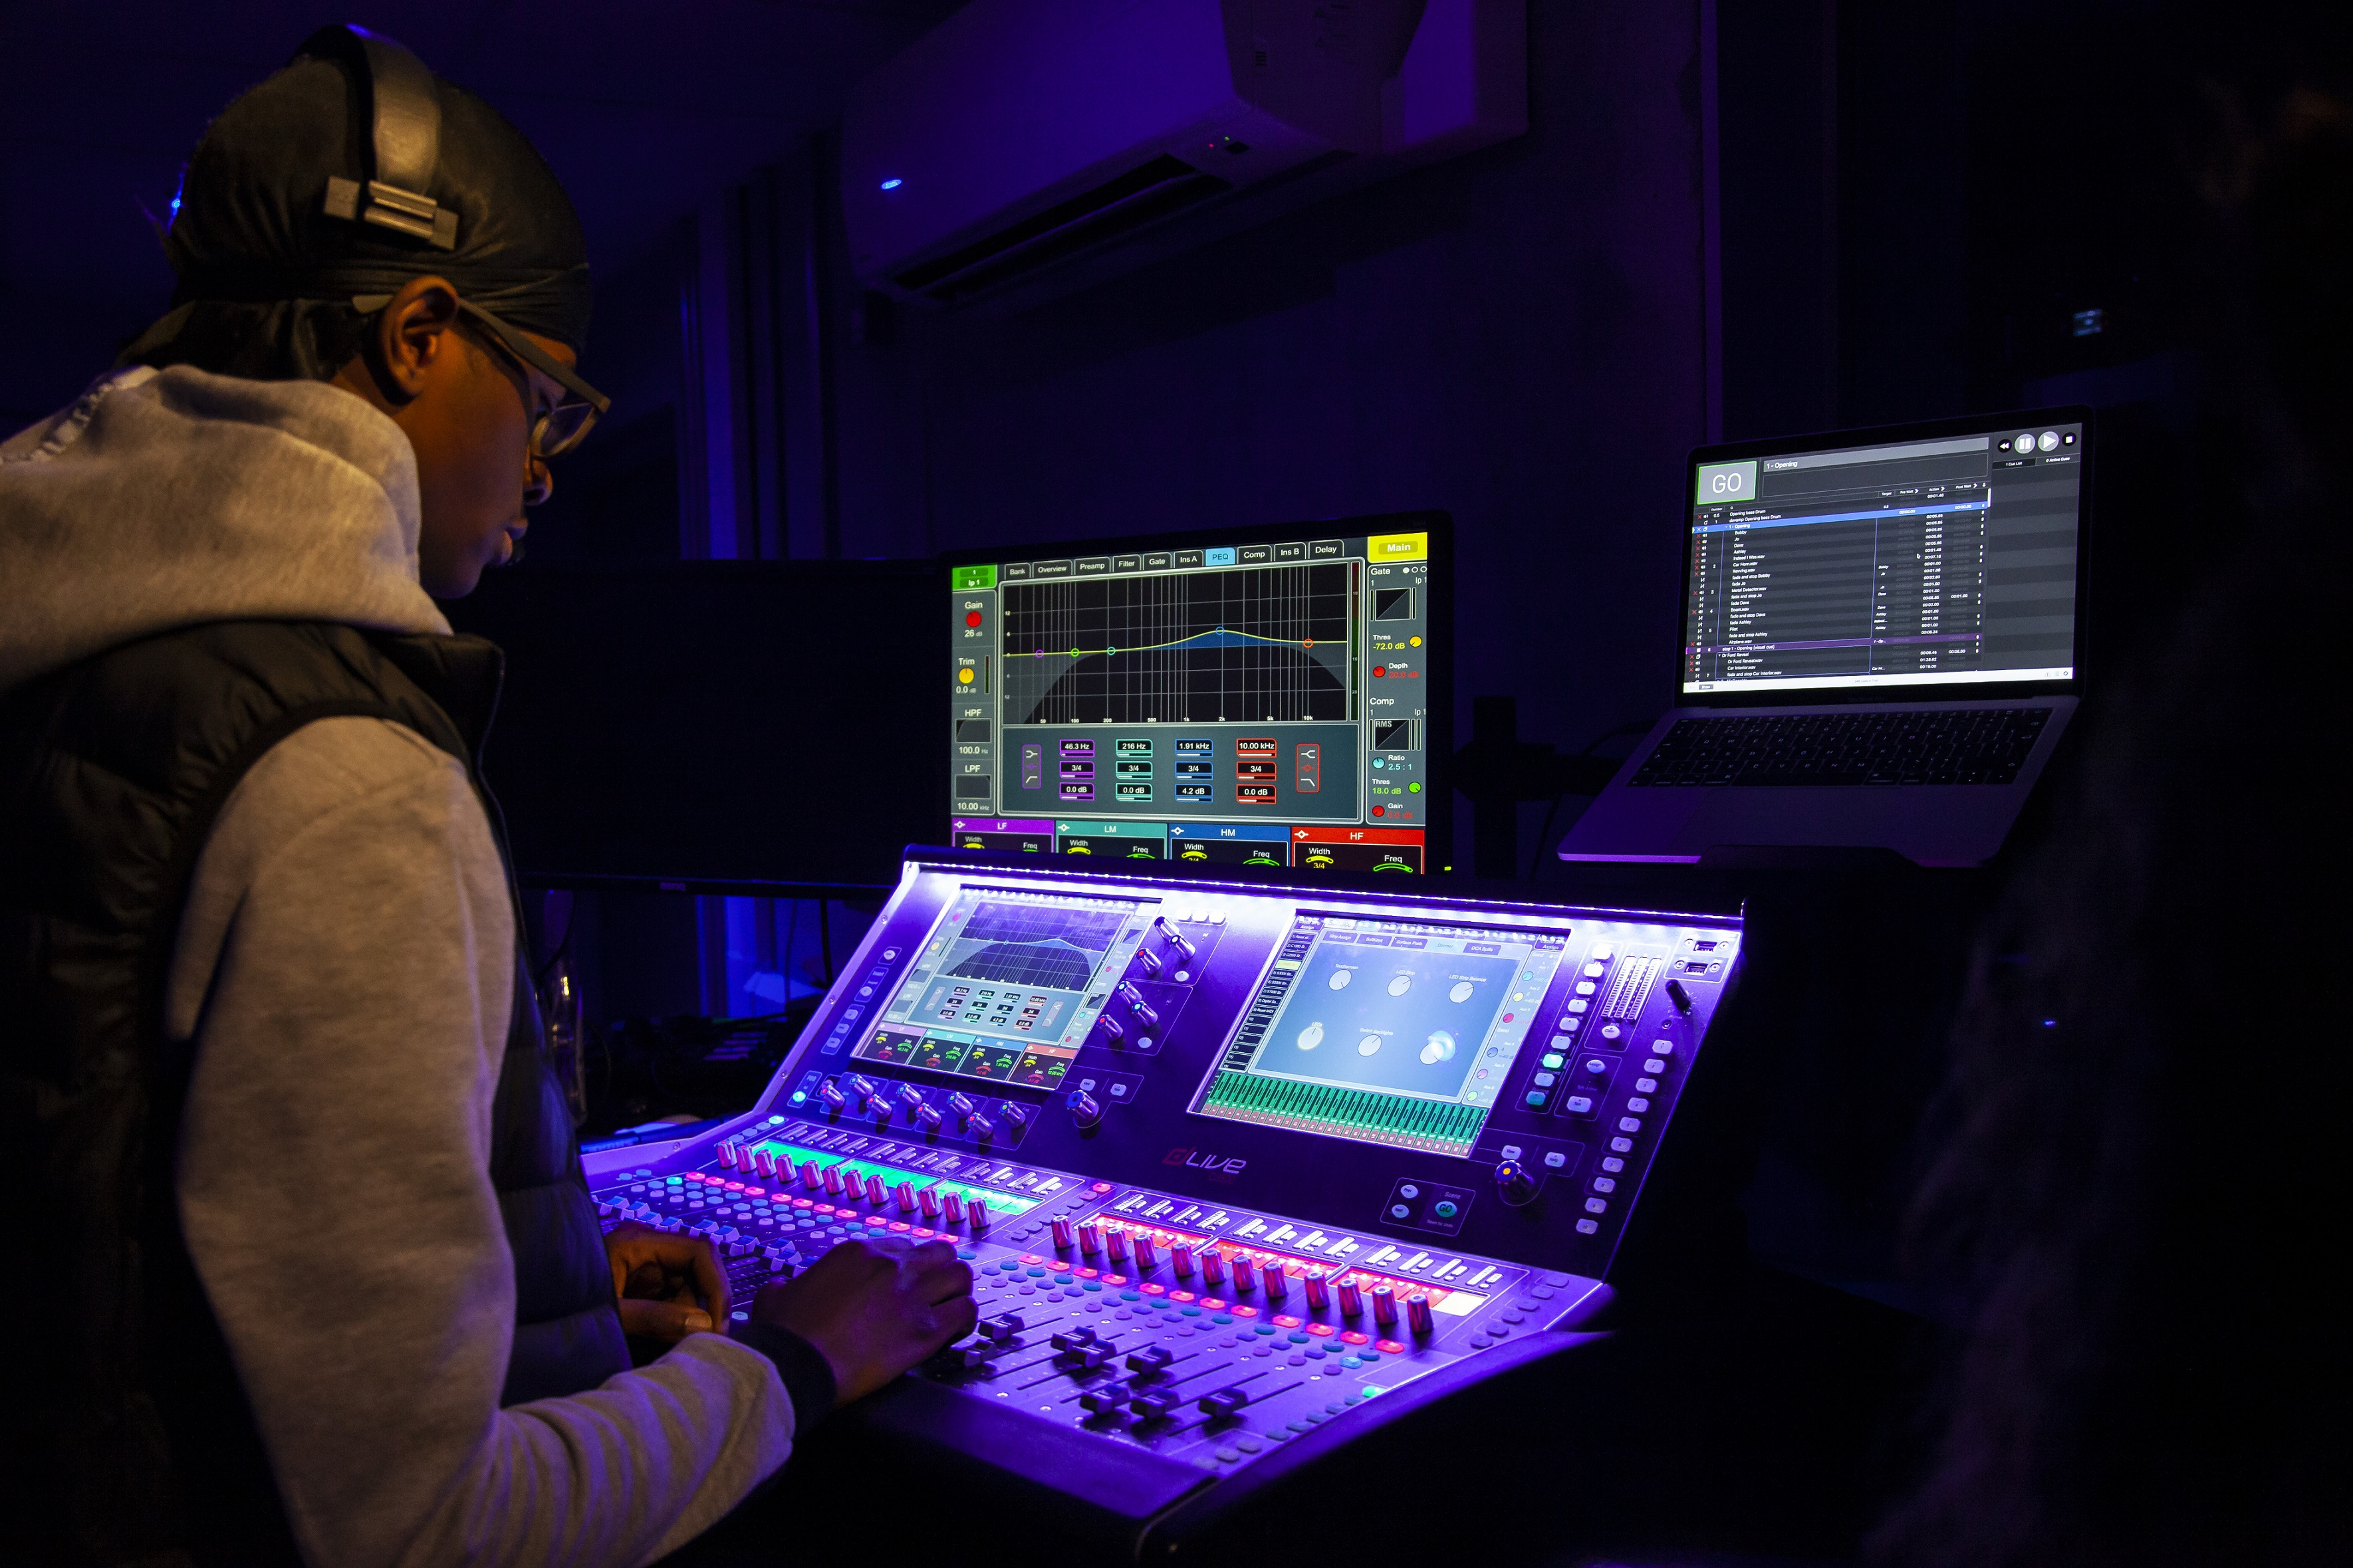 LEEDS CITY COLLEGE STUDENTS GET CREATIVE WITH DLIVE